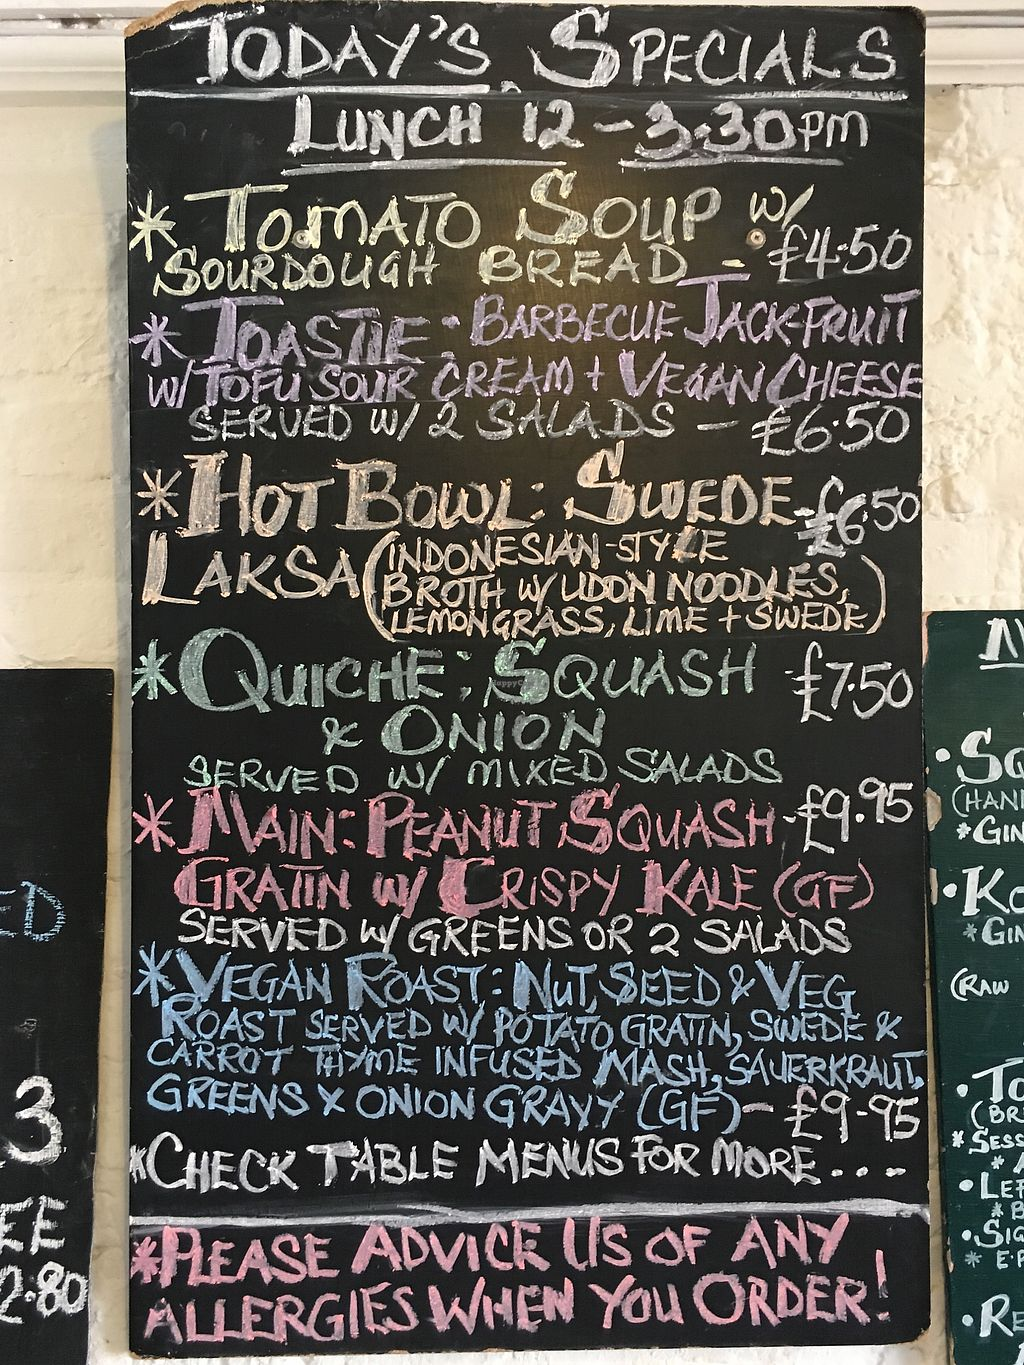 """Photo of Hornbeam Cafe  by <a href=""""/members/profile/Emsee"""">Emsee</a> <br/>Menu for May holiday weekend 2018 <br/> May 7, 2018  - <a href='/contact/abuse/image/688/396652'>Report</a>"""